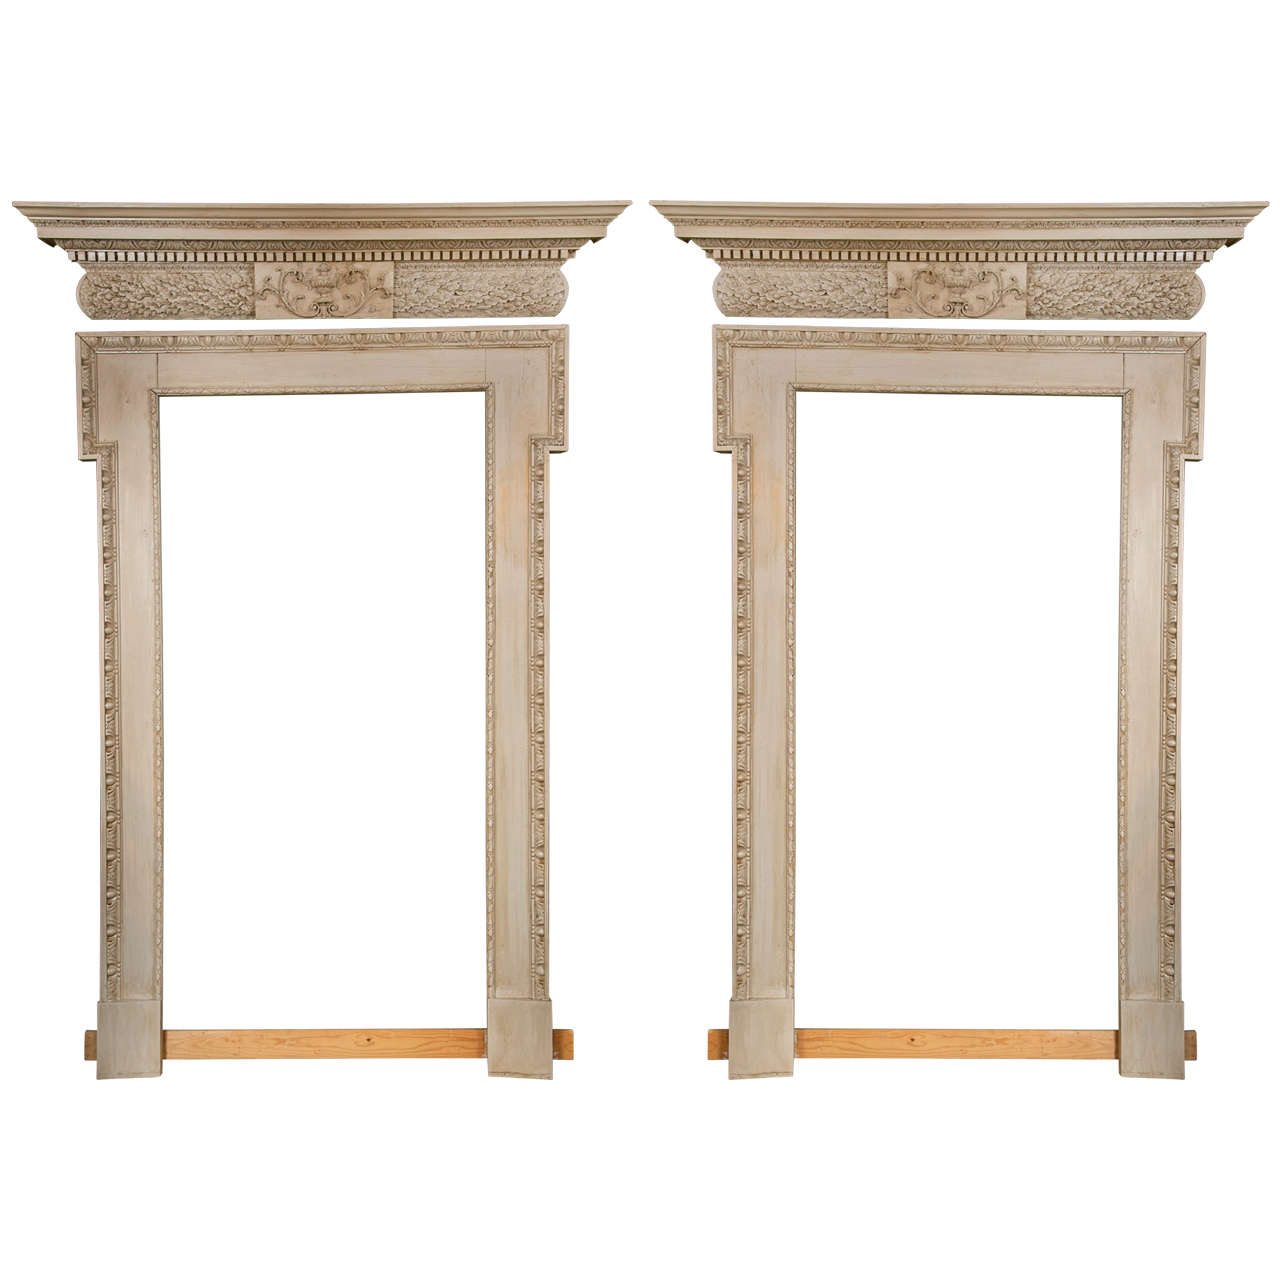 Pair Of Door Surrounds And Pediments Framing Large Mirrors For Sale